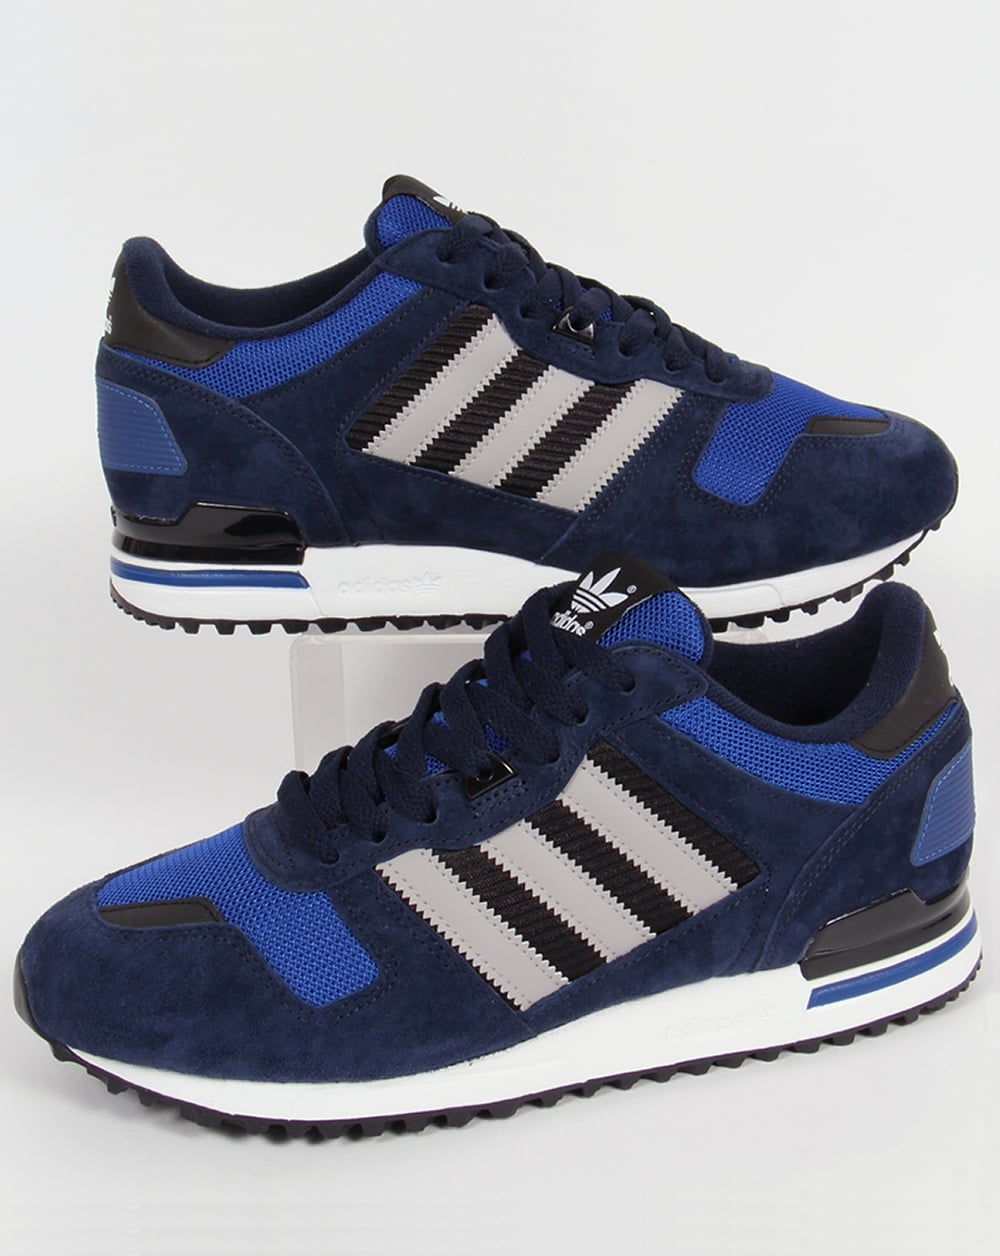 57e1700fc2dea adidas Trainers Adidas ZX 700 Trainers Navy Grey Royal Blue